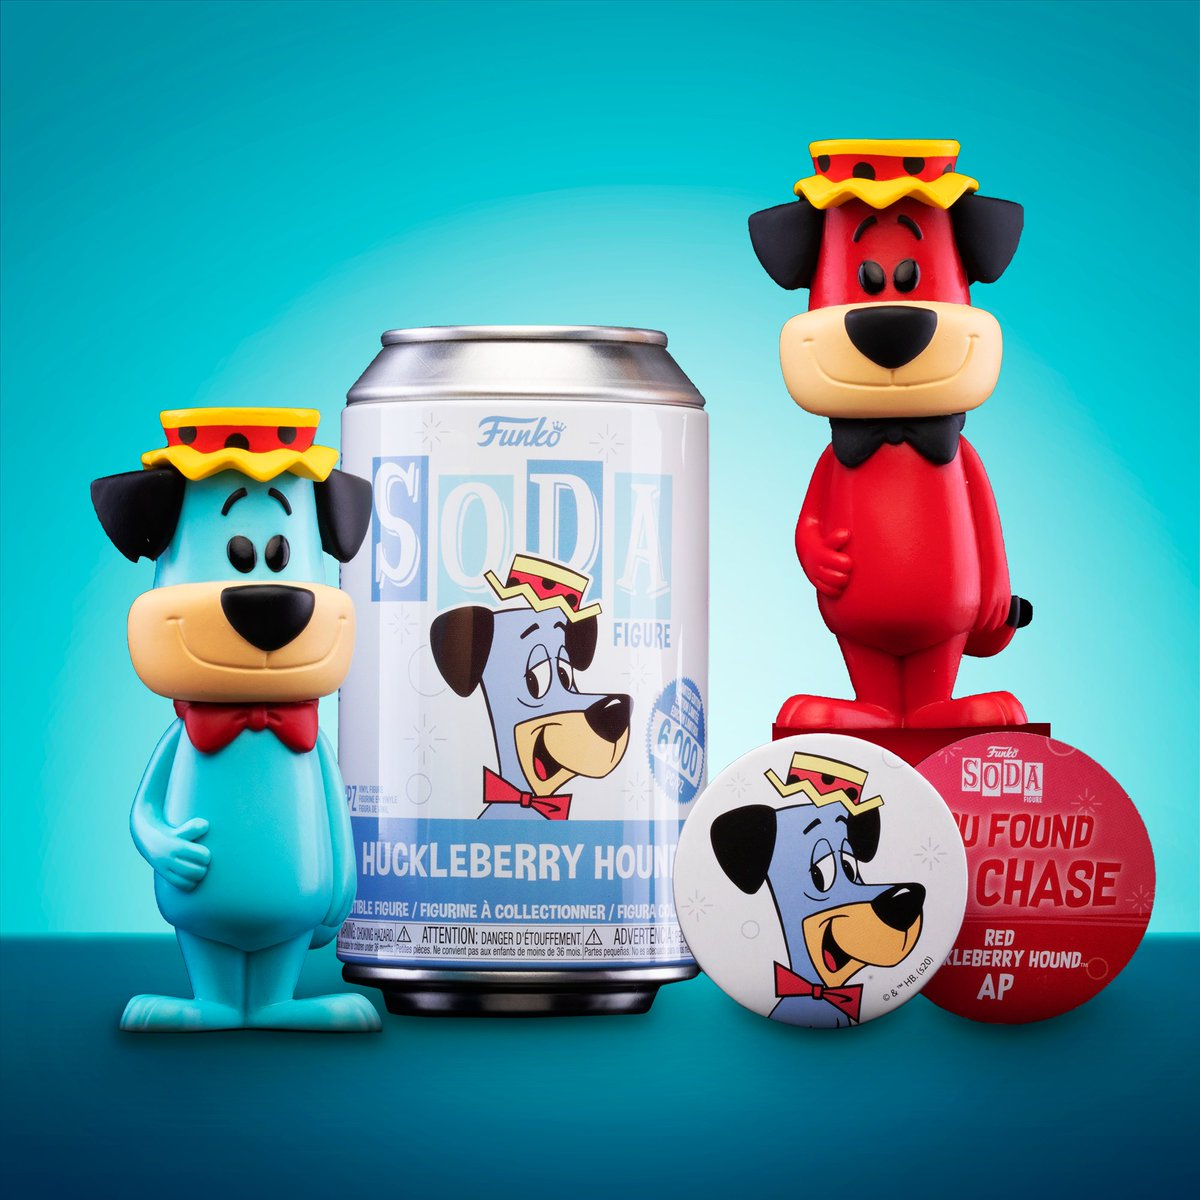 S, S, S, Soda! What characters would you like to see next? #Funko #FunkoSODA #HuckleberryHound